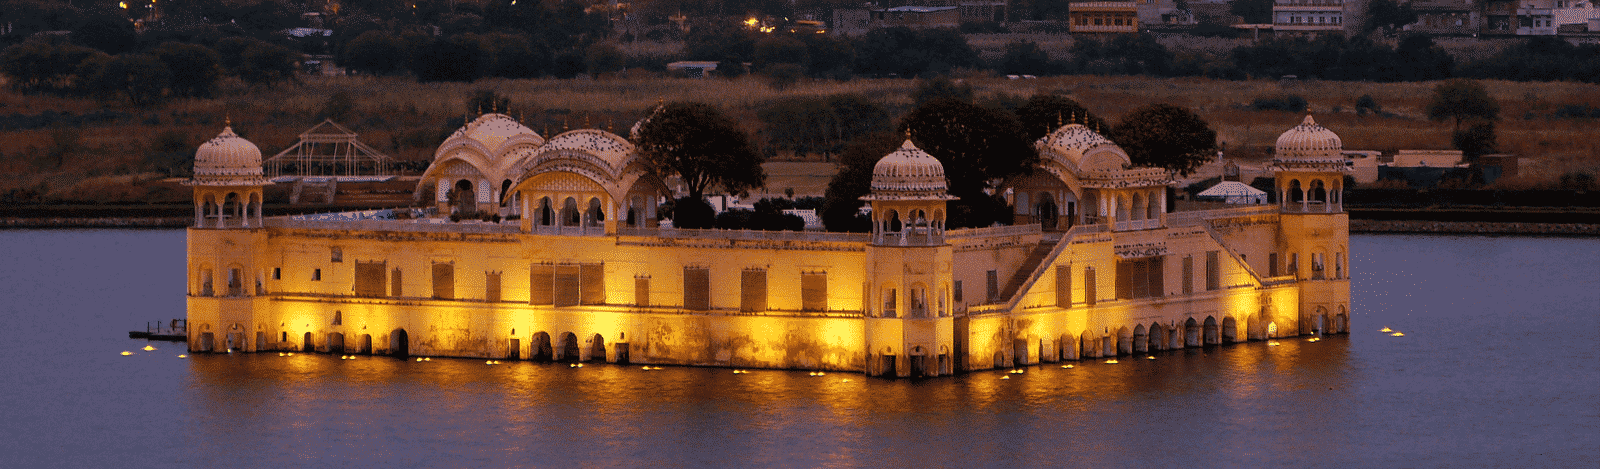 6-Day Golden Triangle Tour from Delhi to Jaipur & Agra